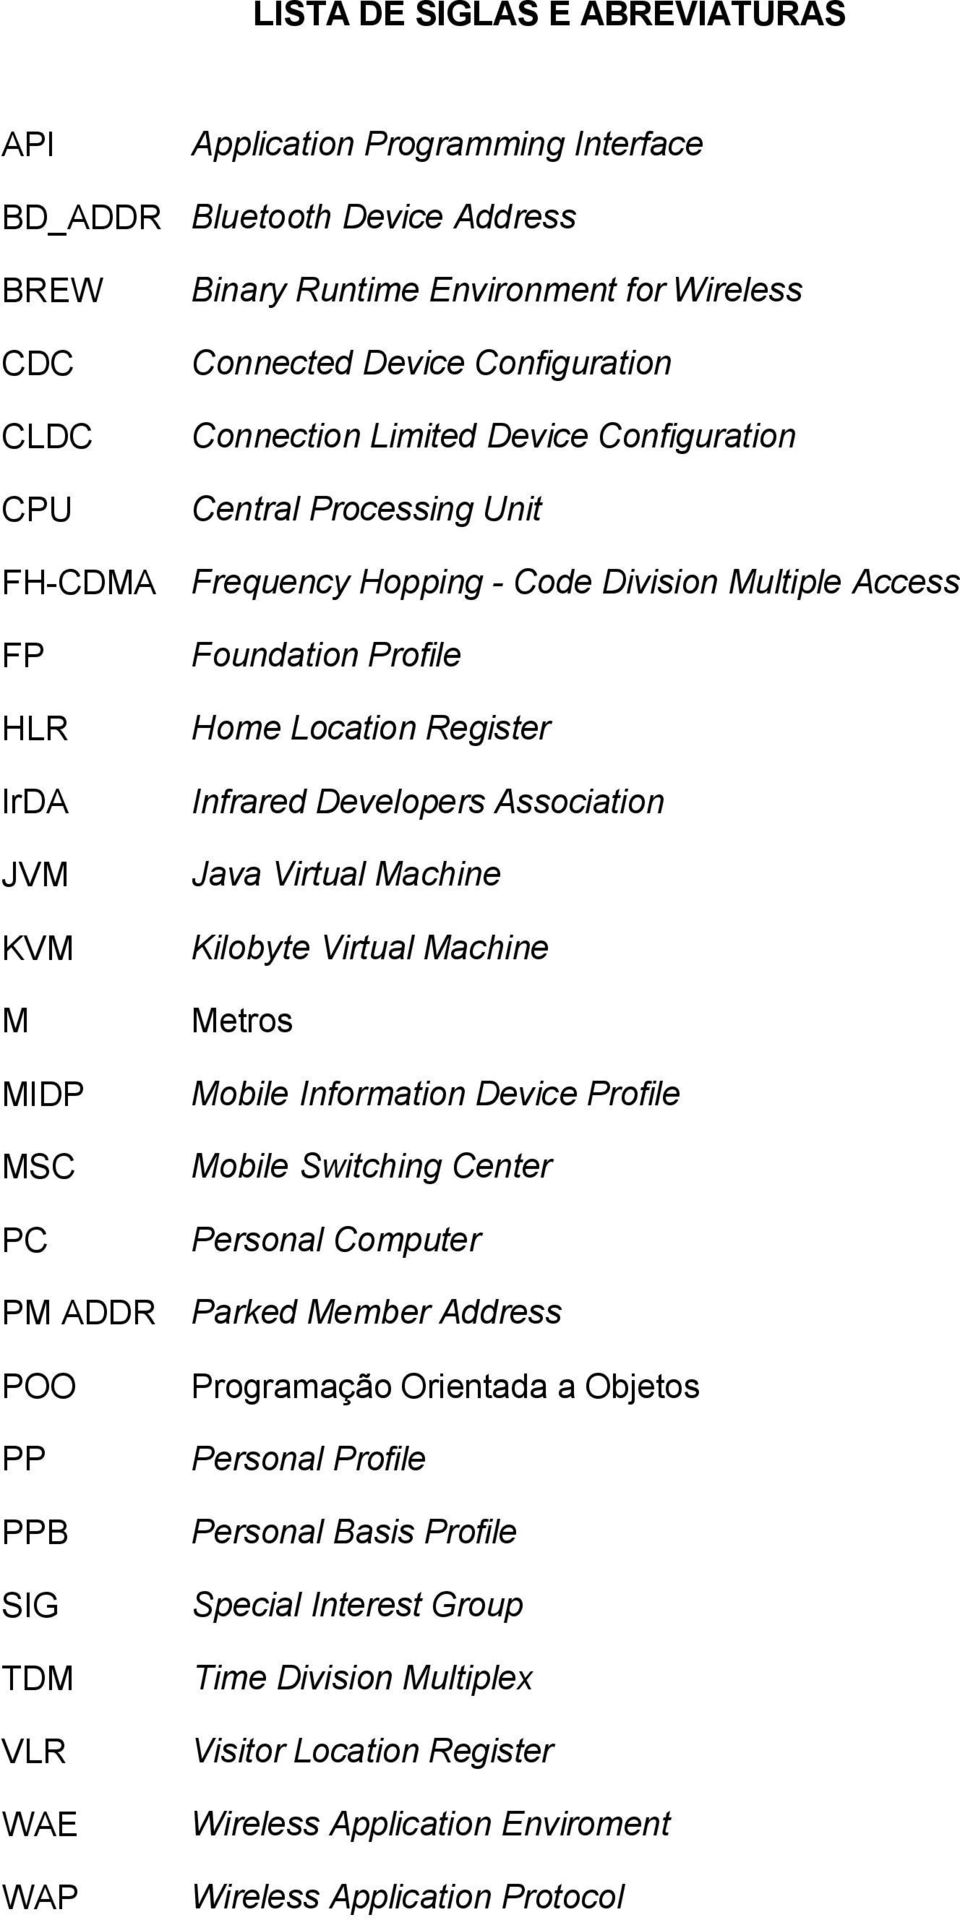 Infrared Developers Association Java Virtual Machine Kilobyte Virtual Machine Metros Mobile Information Device Profile Mobile Switching Center Personal Computer PM ADDR Parked Member Address POO PP